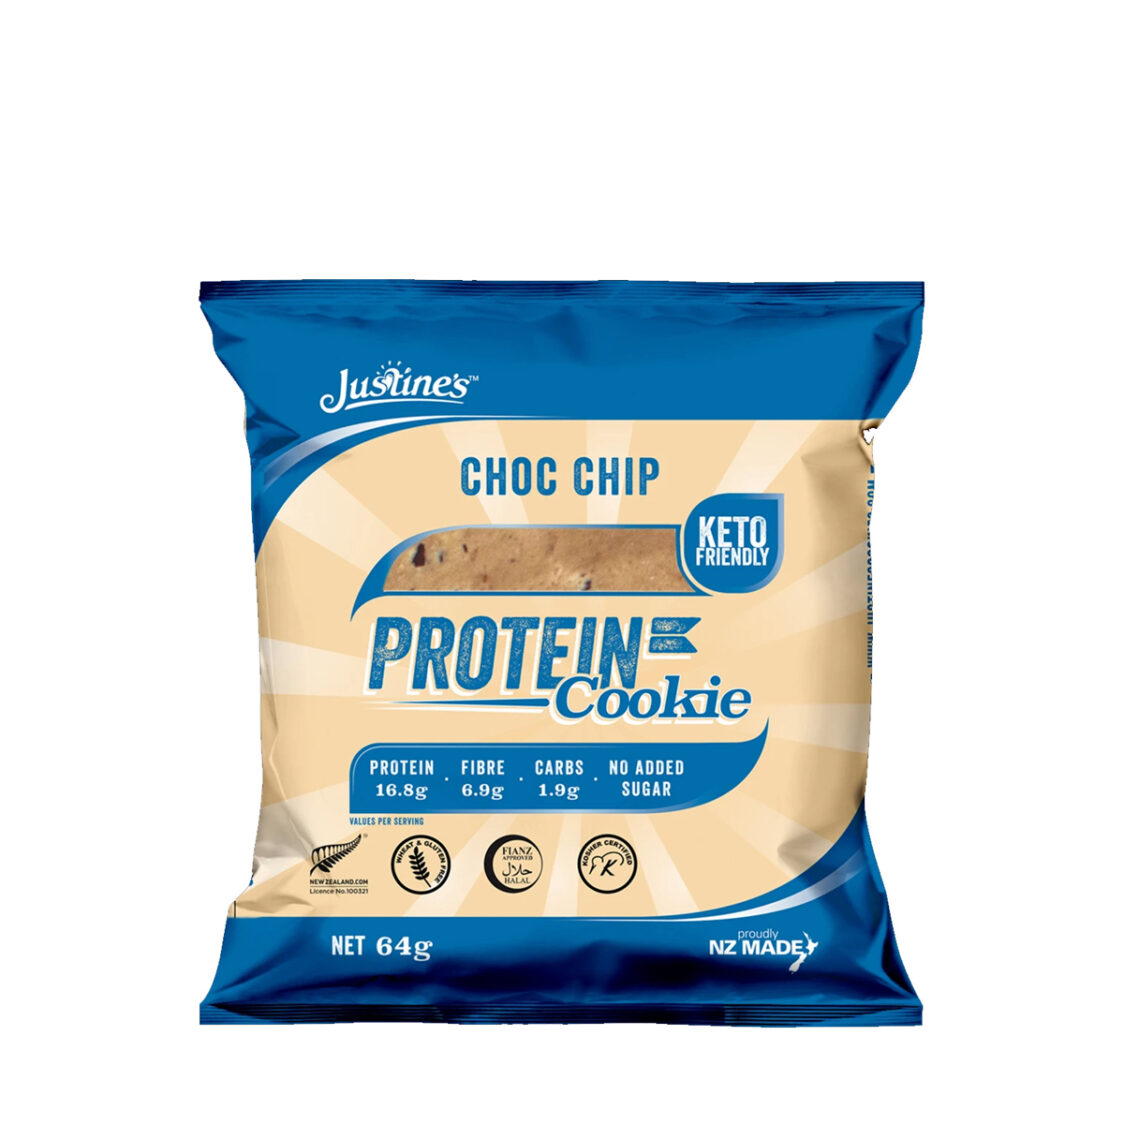 Justines Protein Cookie - Choc Chips 12 Pcs